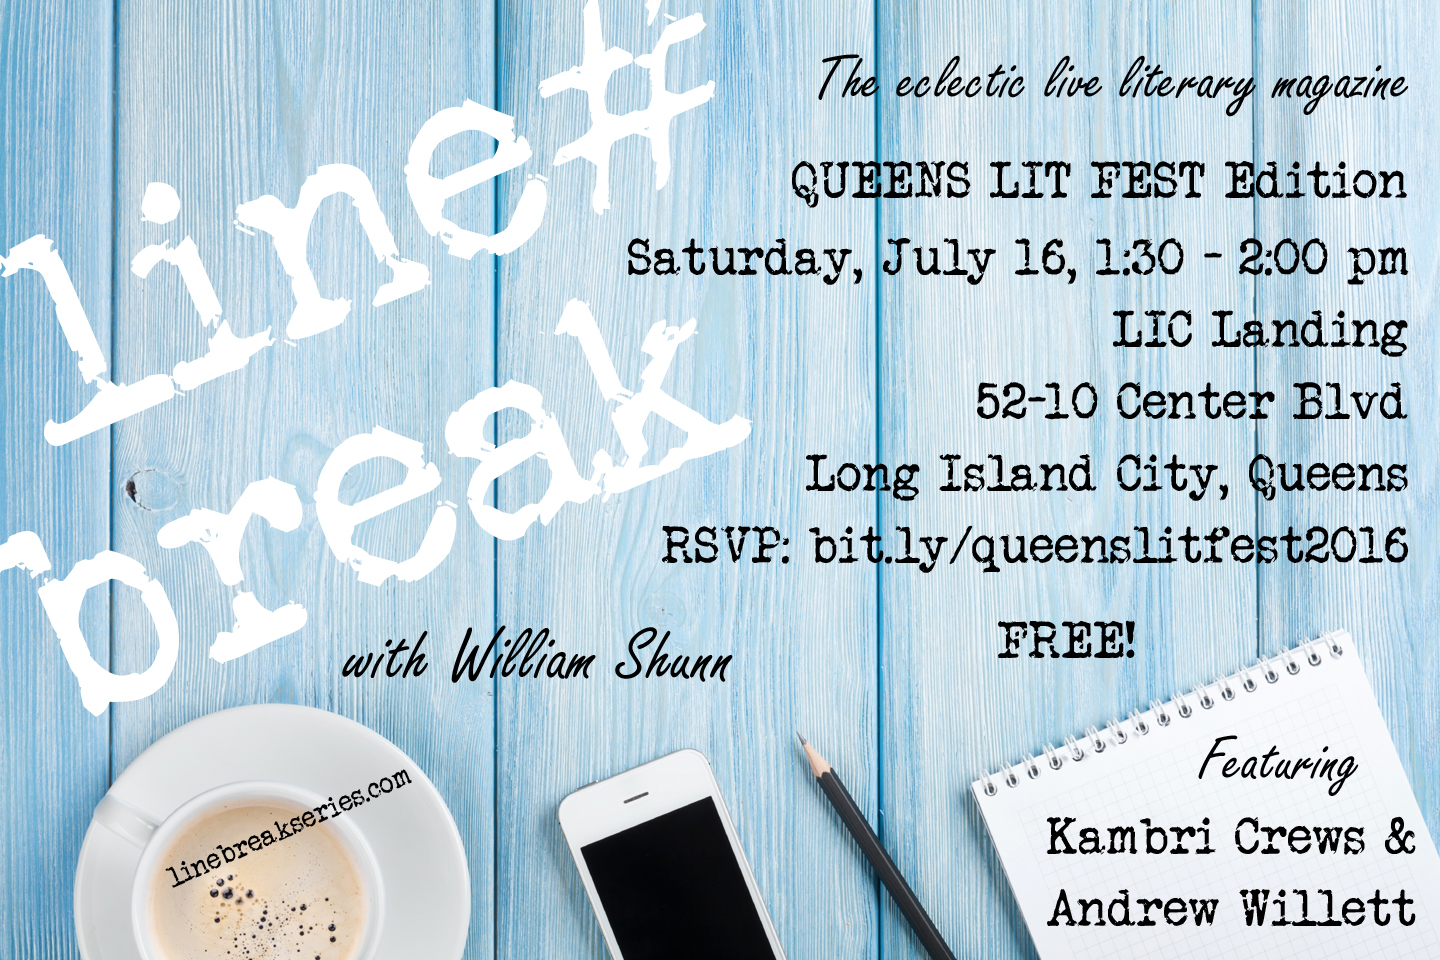 Line Break Reading Series at the Queens Lit Fest, Saturday, July 16, 1:30-2:00 pm